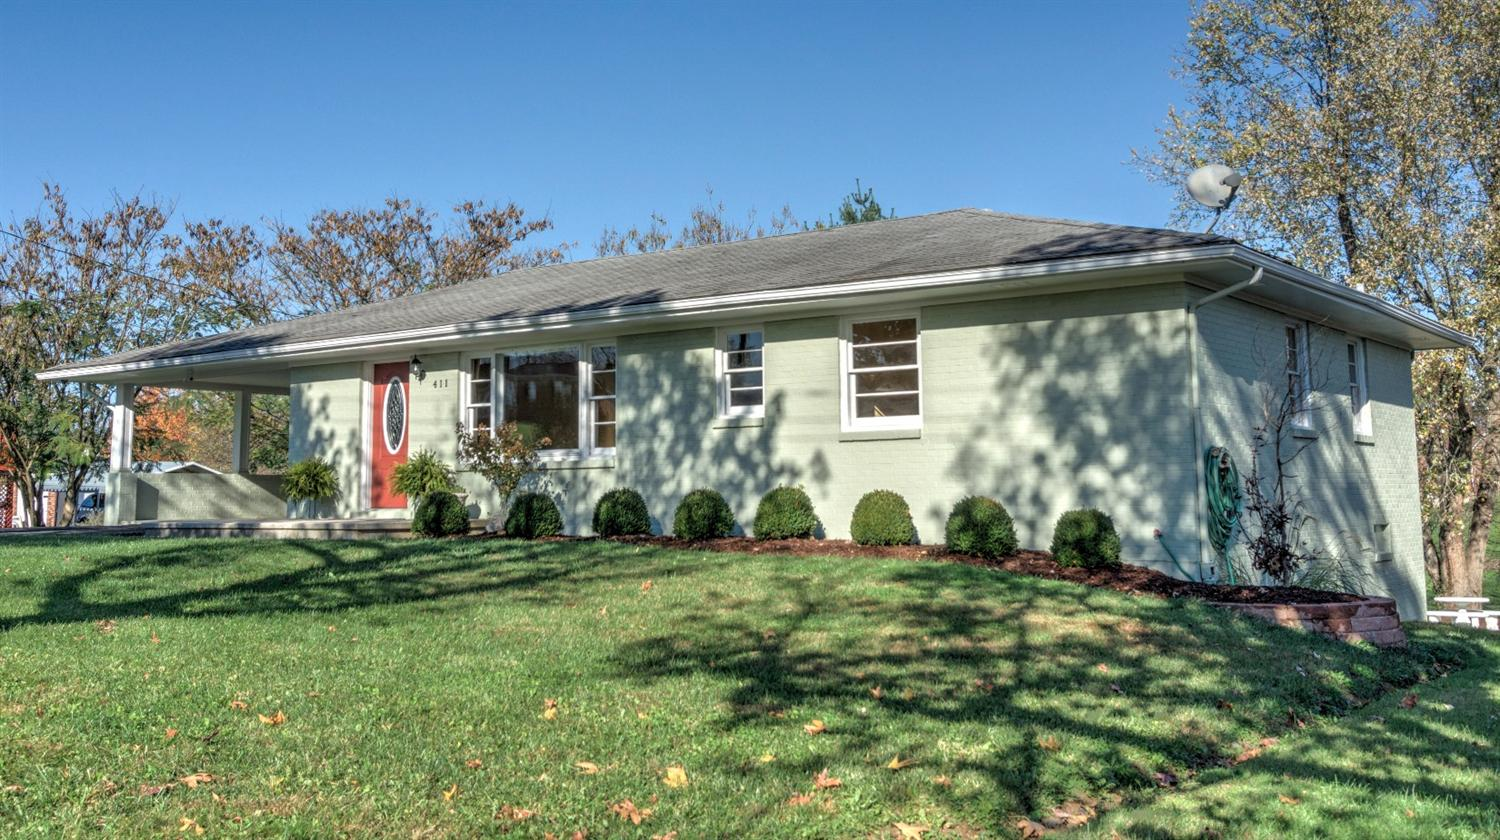 411 Crab Orchard St, Lancaster, KY